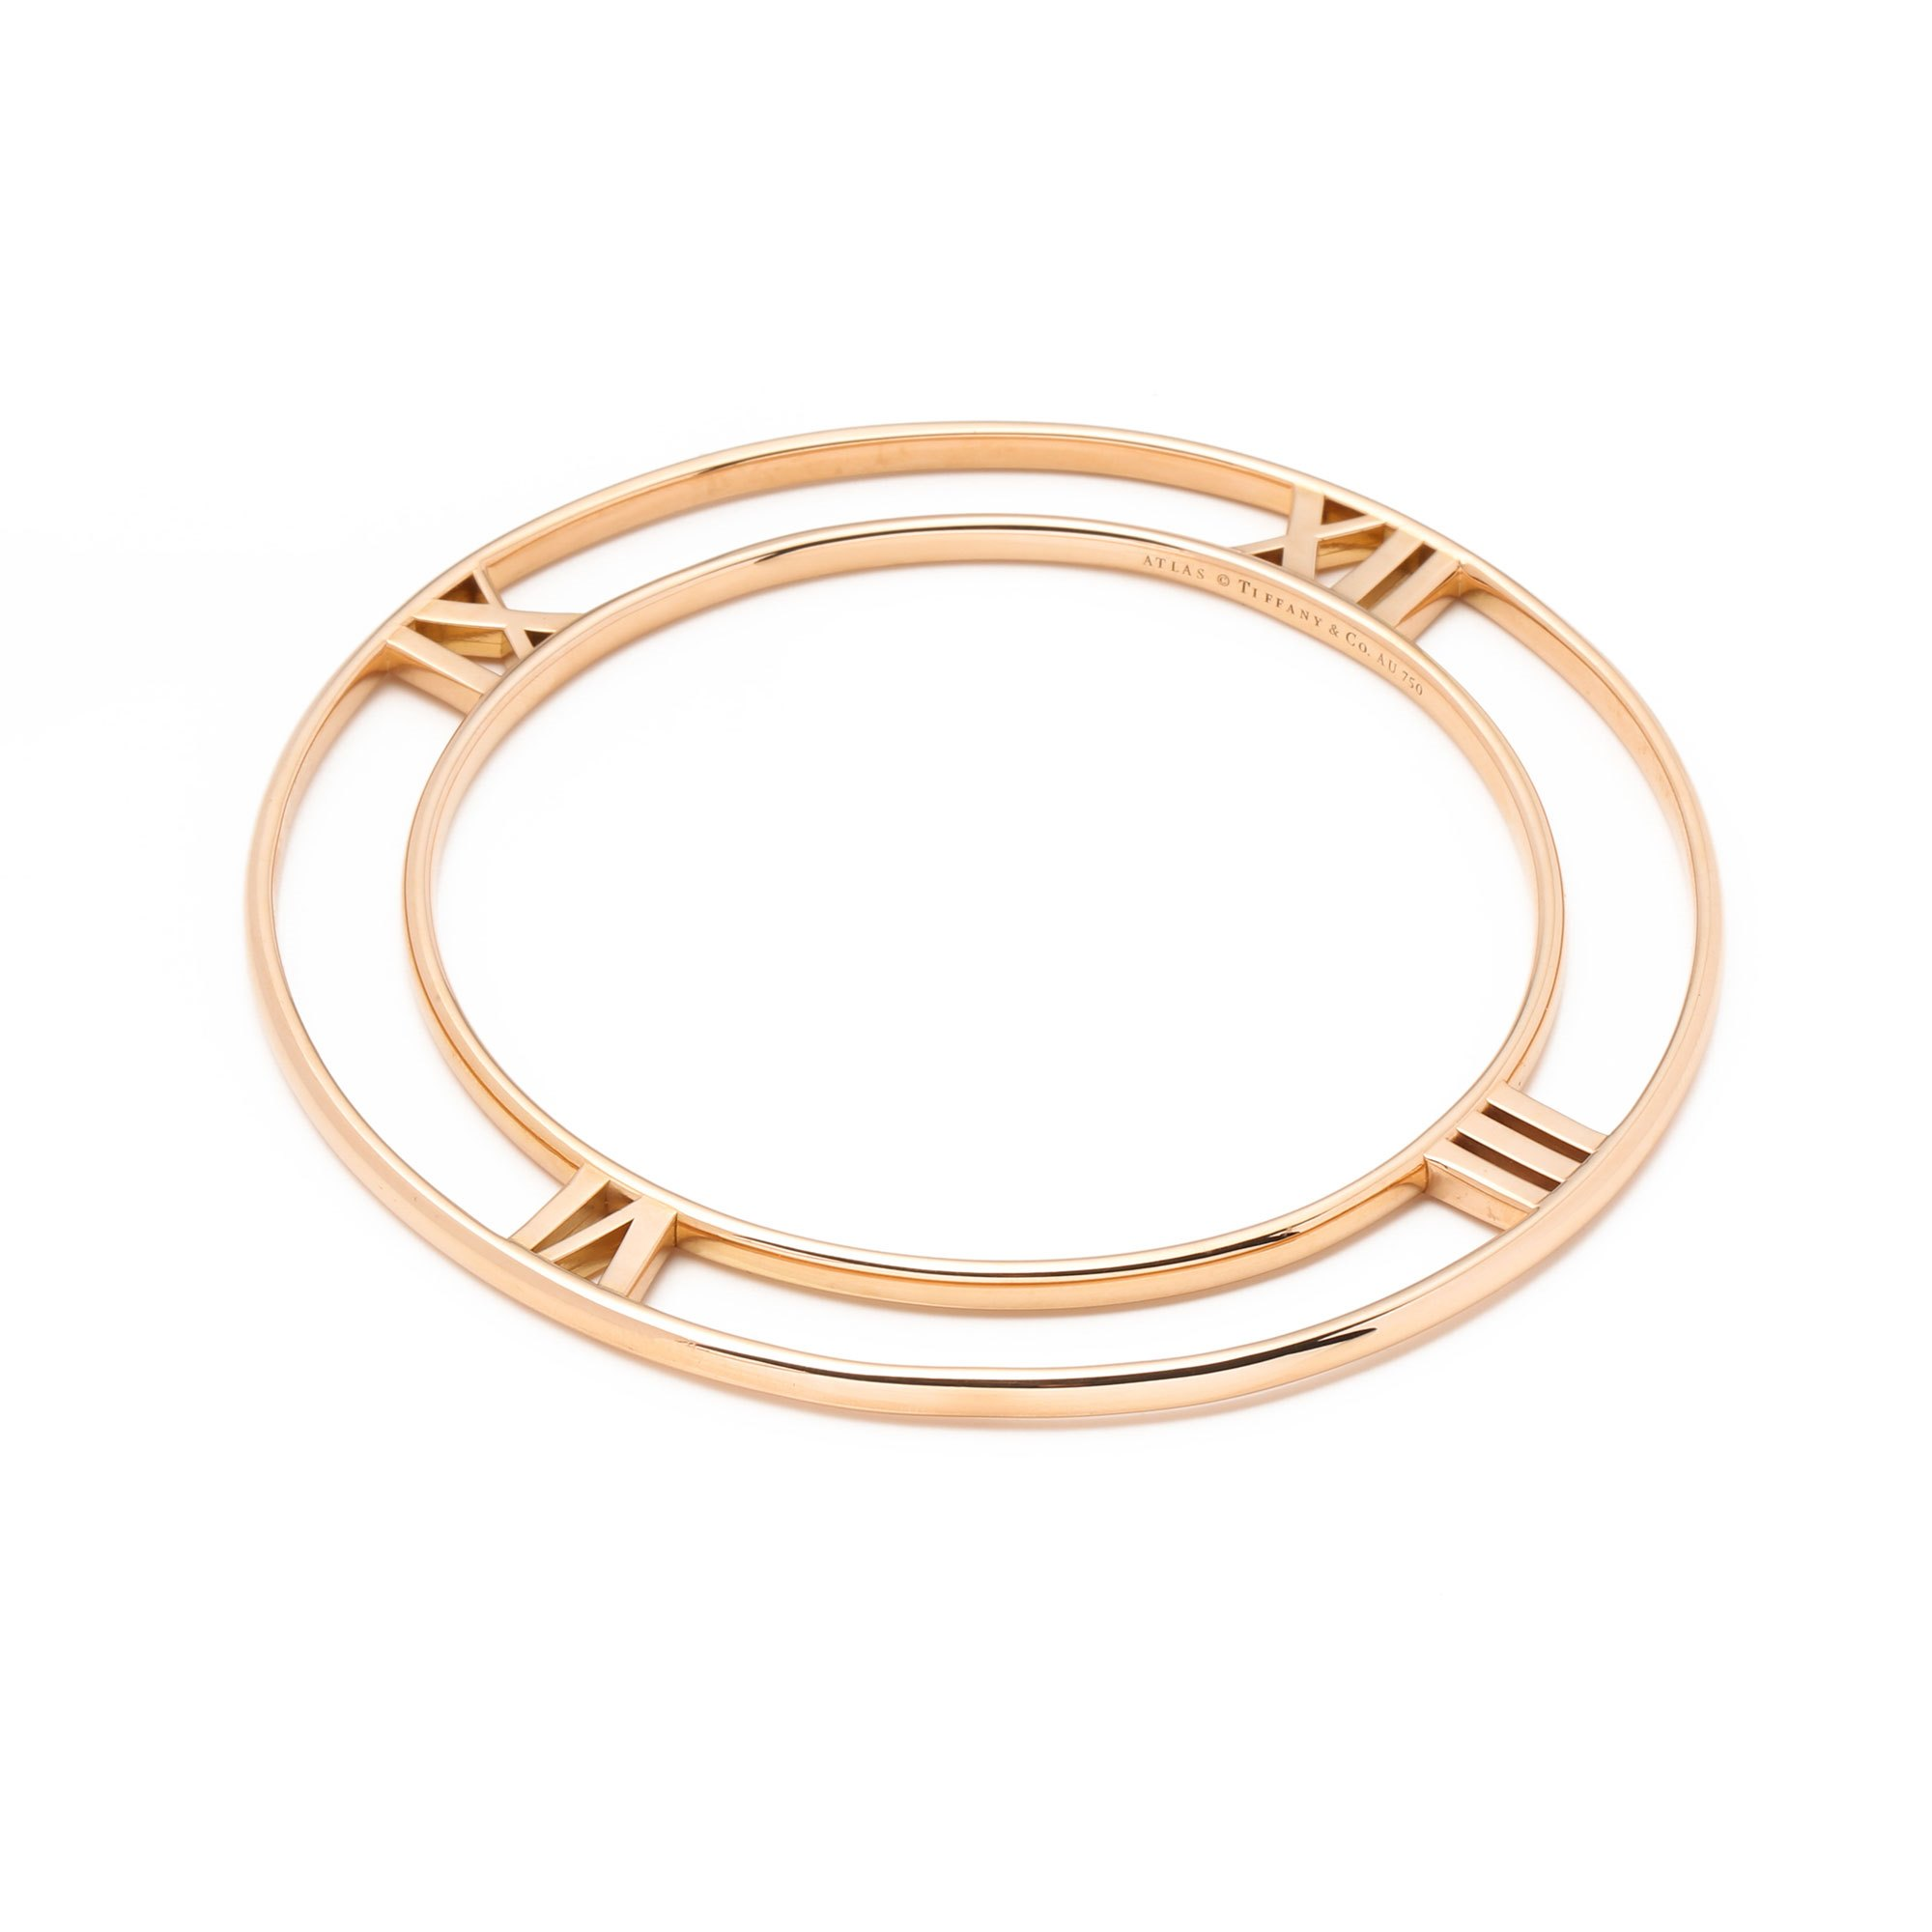 Tiffany & Co. 18k Rose Gold Flat Atlas Bangle